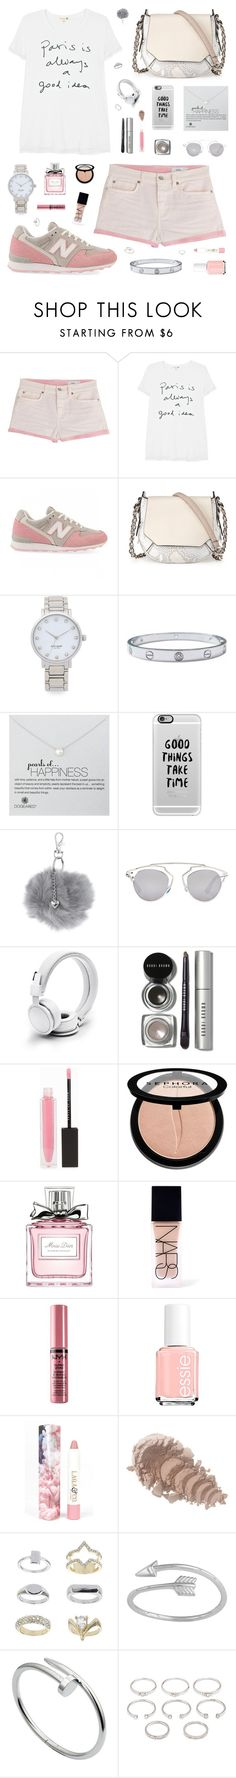 """Chic Style"" by belenloperfido ❤ liked on Polyvore featuring Closed, Sundry, New Balance, rag & bone, Kate Spade, Cartier, Dogeared, Casetify, Dorothy Perkins and Christian Dior"